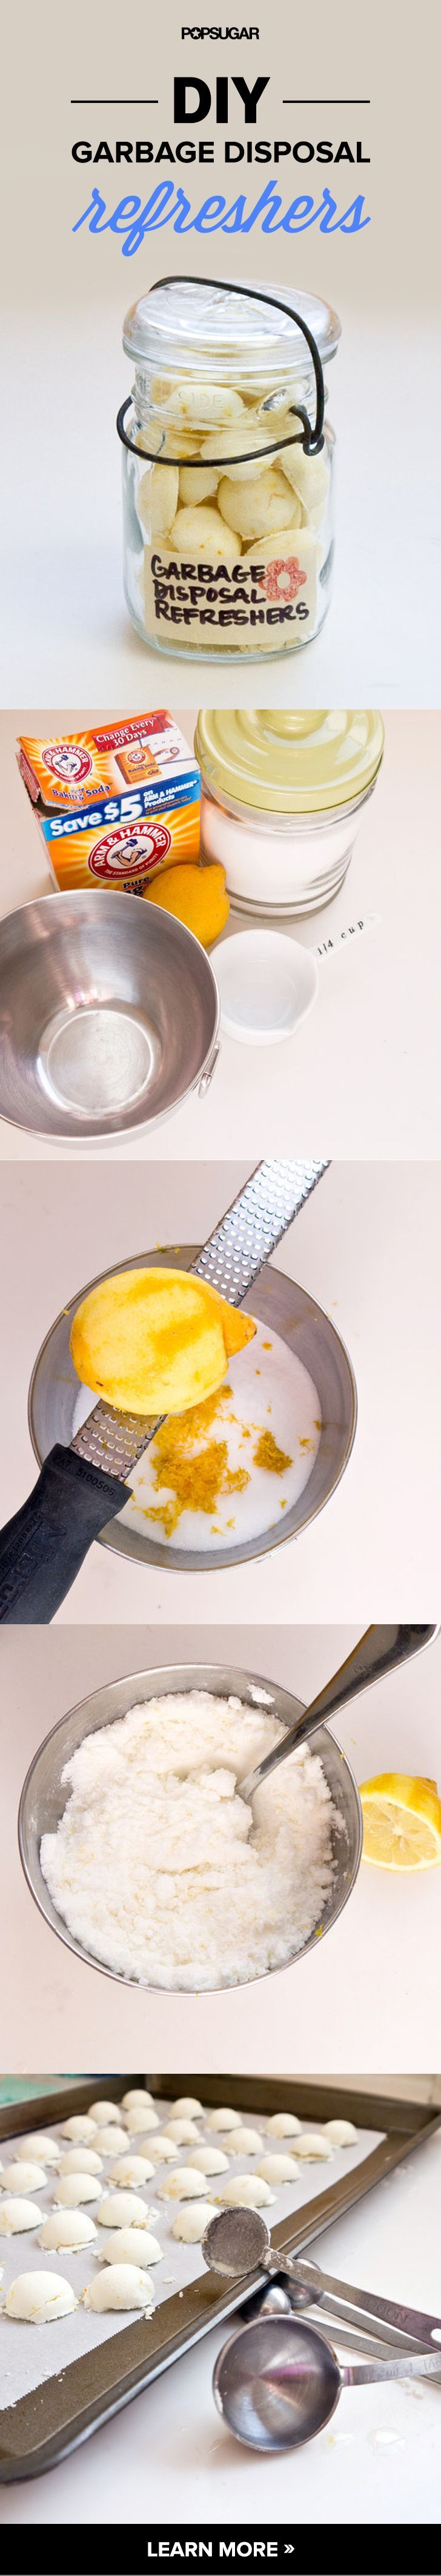 If your garbage disposal isn't as fresh as it should be, DIY these homemade refreshers for a quick fix. Made with lemon peel and baking soda, these little rounds pack a serious cleaning punch while costing only a few dollars to make. And they look darn cute in a glass jar next to your sink.